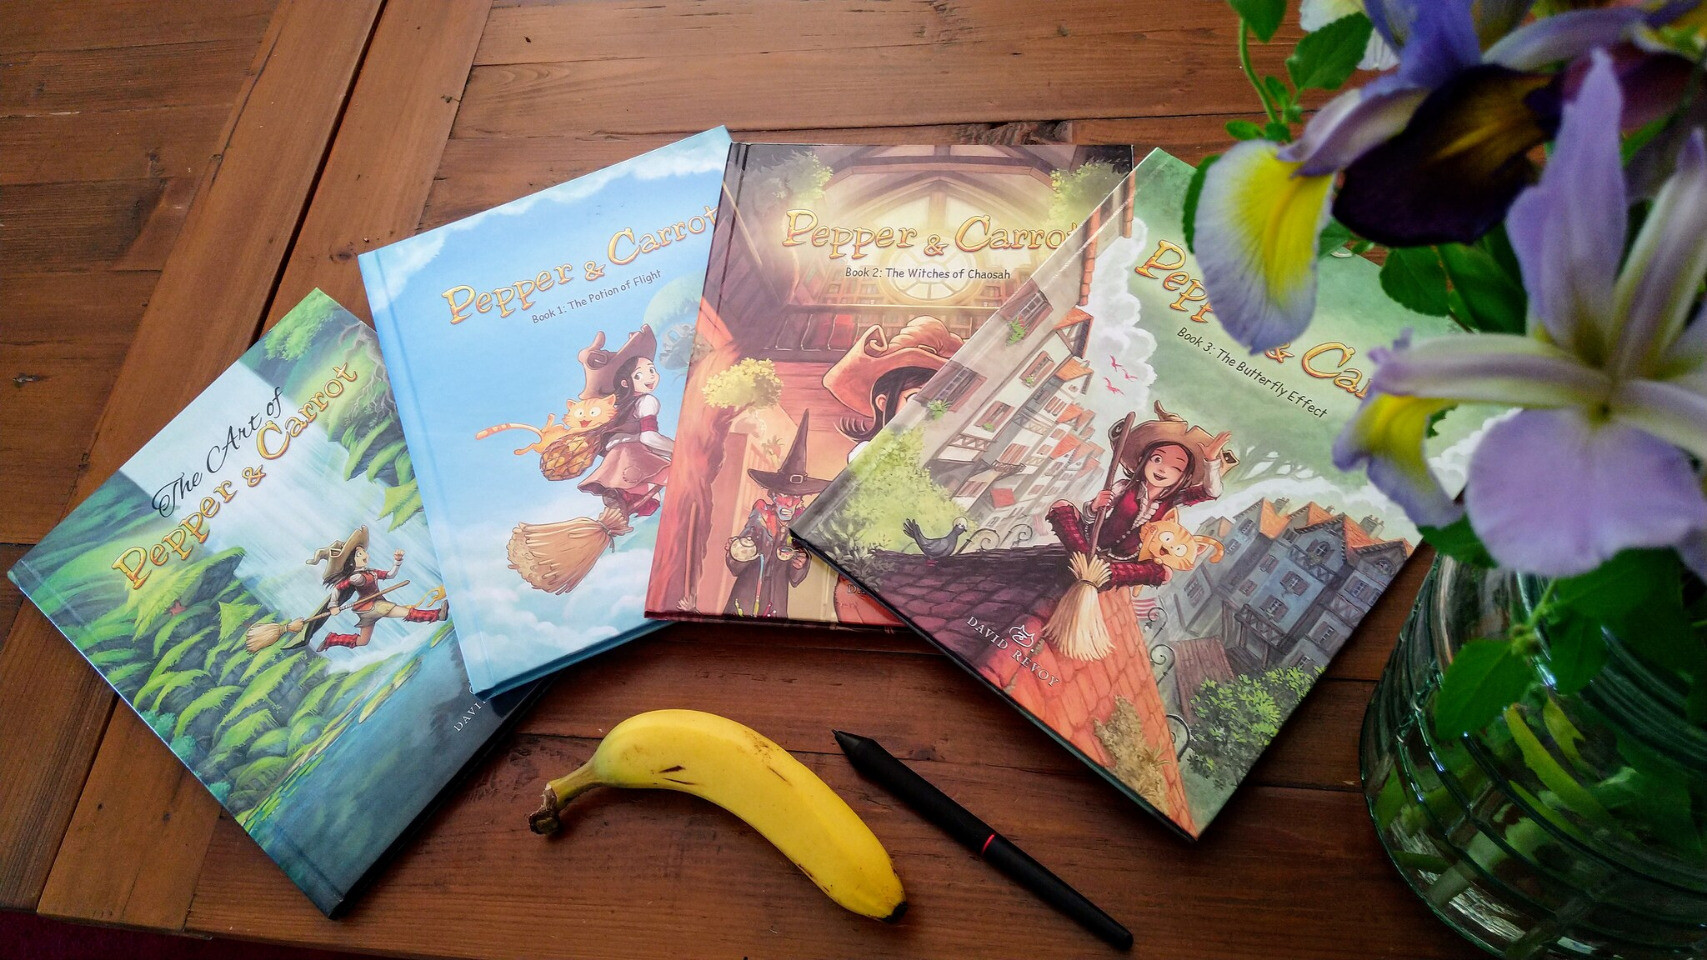 The 4 comic books on my table, a pot of flower in foreground, a banana and a stylus (for scale).